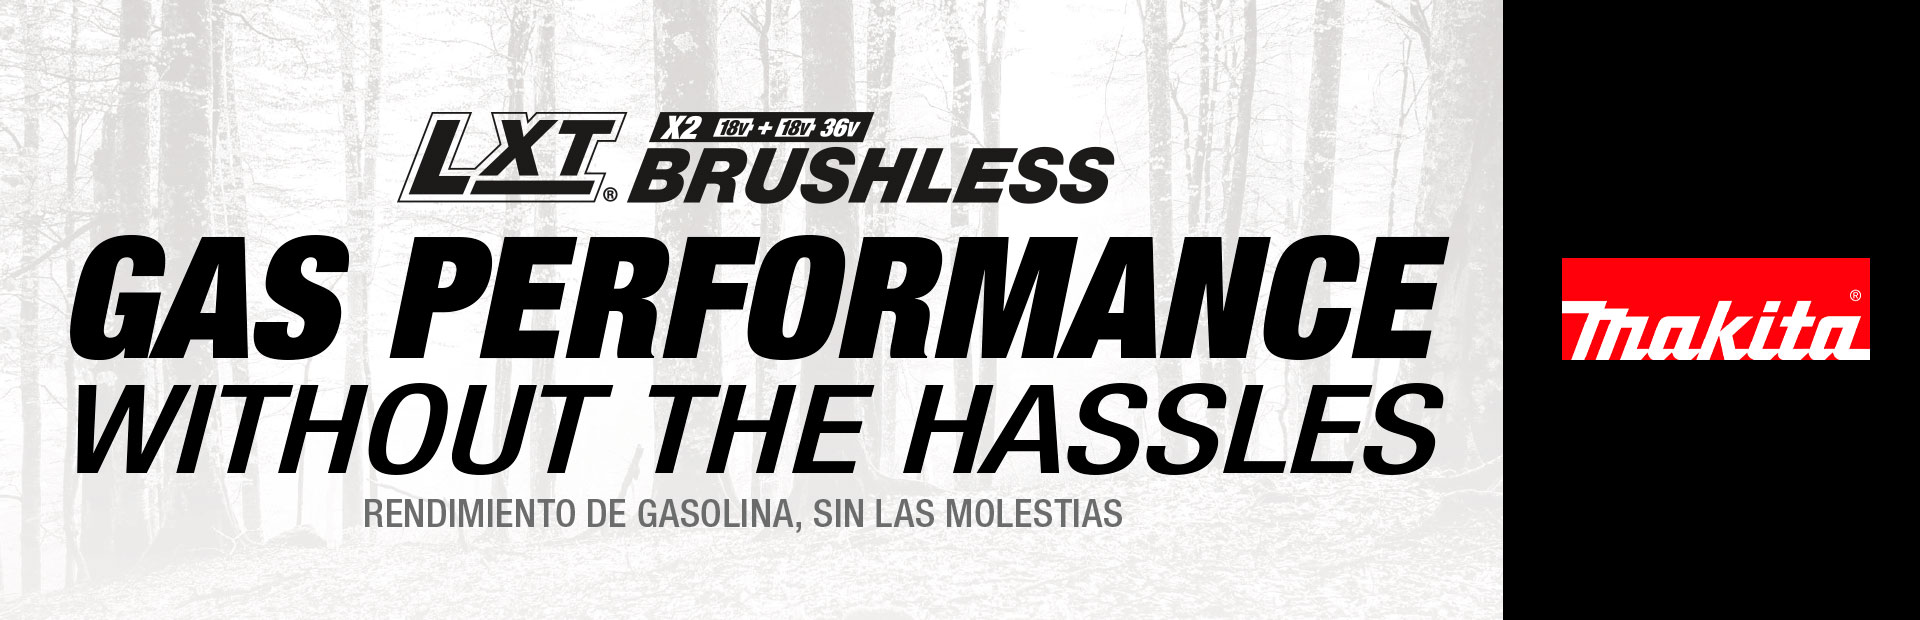 Makita: LXT Brushless Gas Performance Without The Hassles